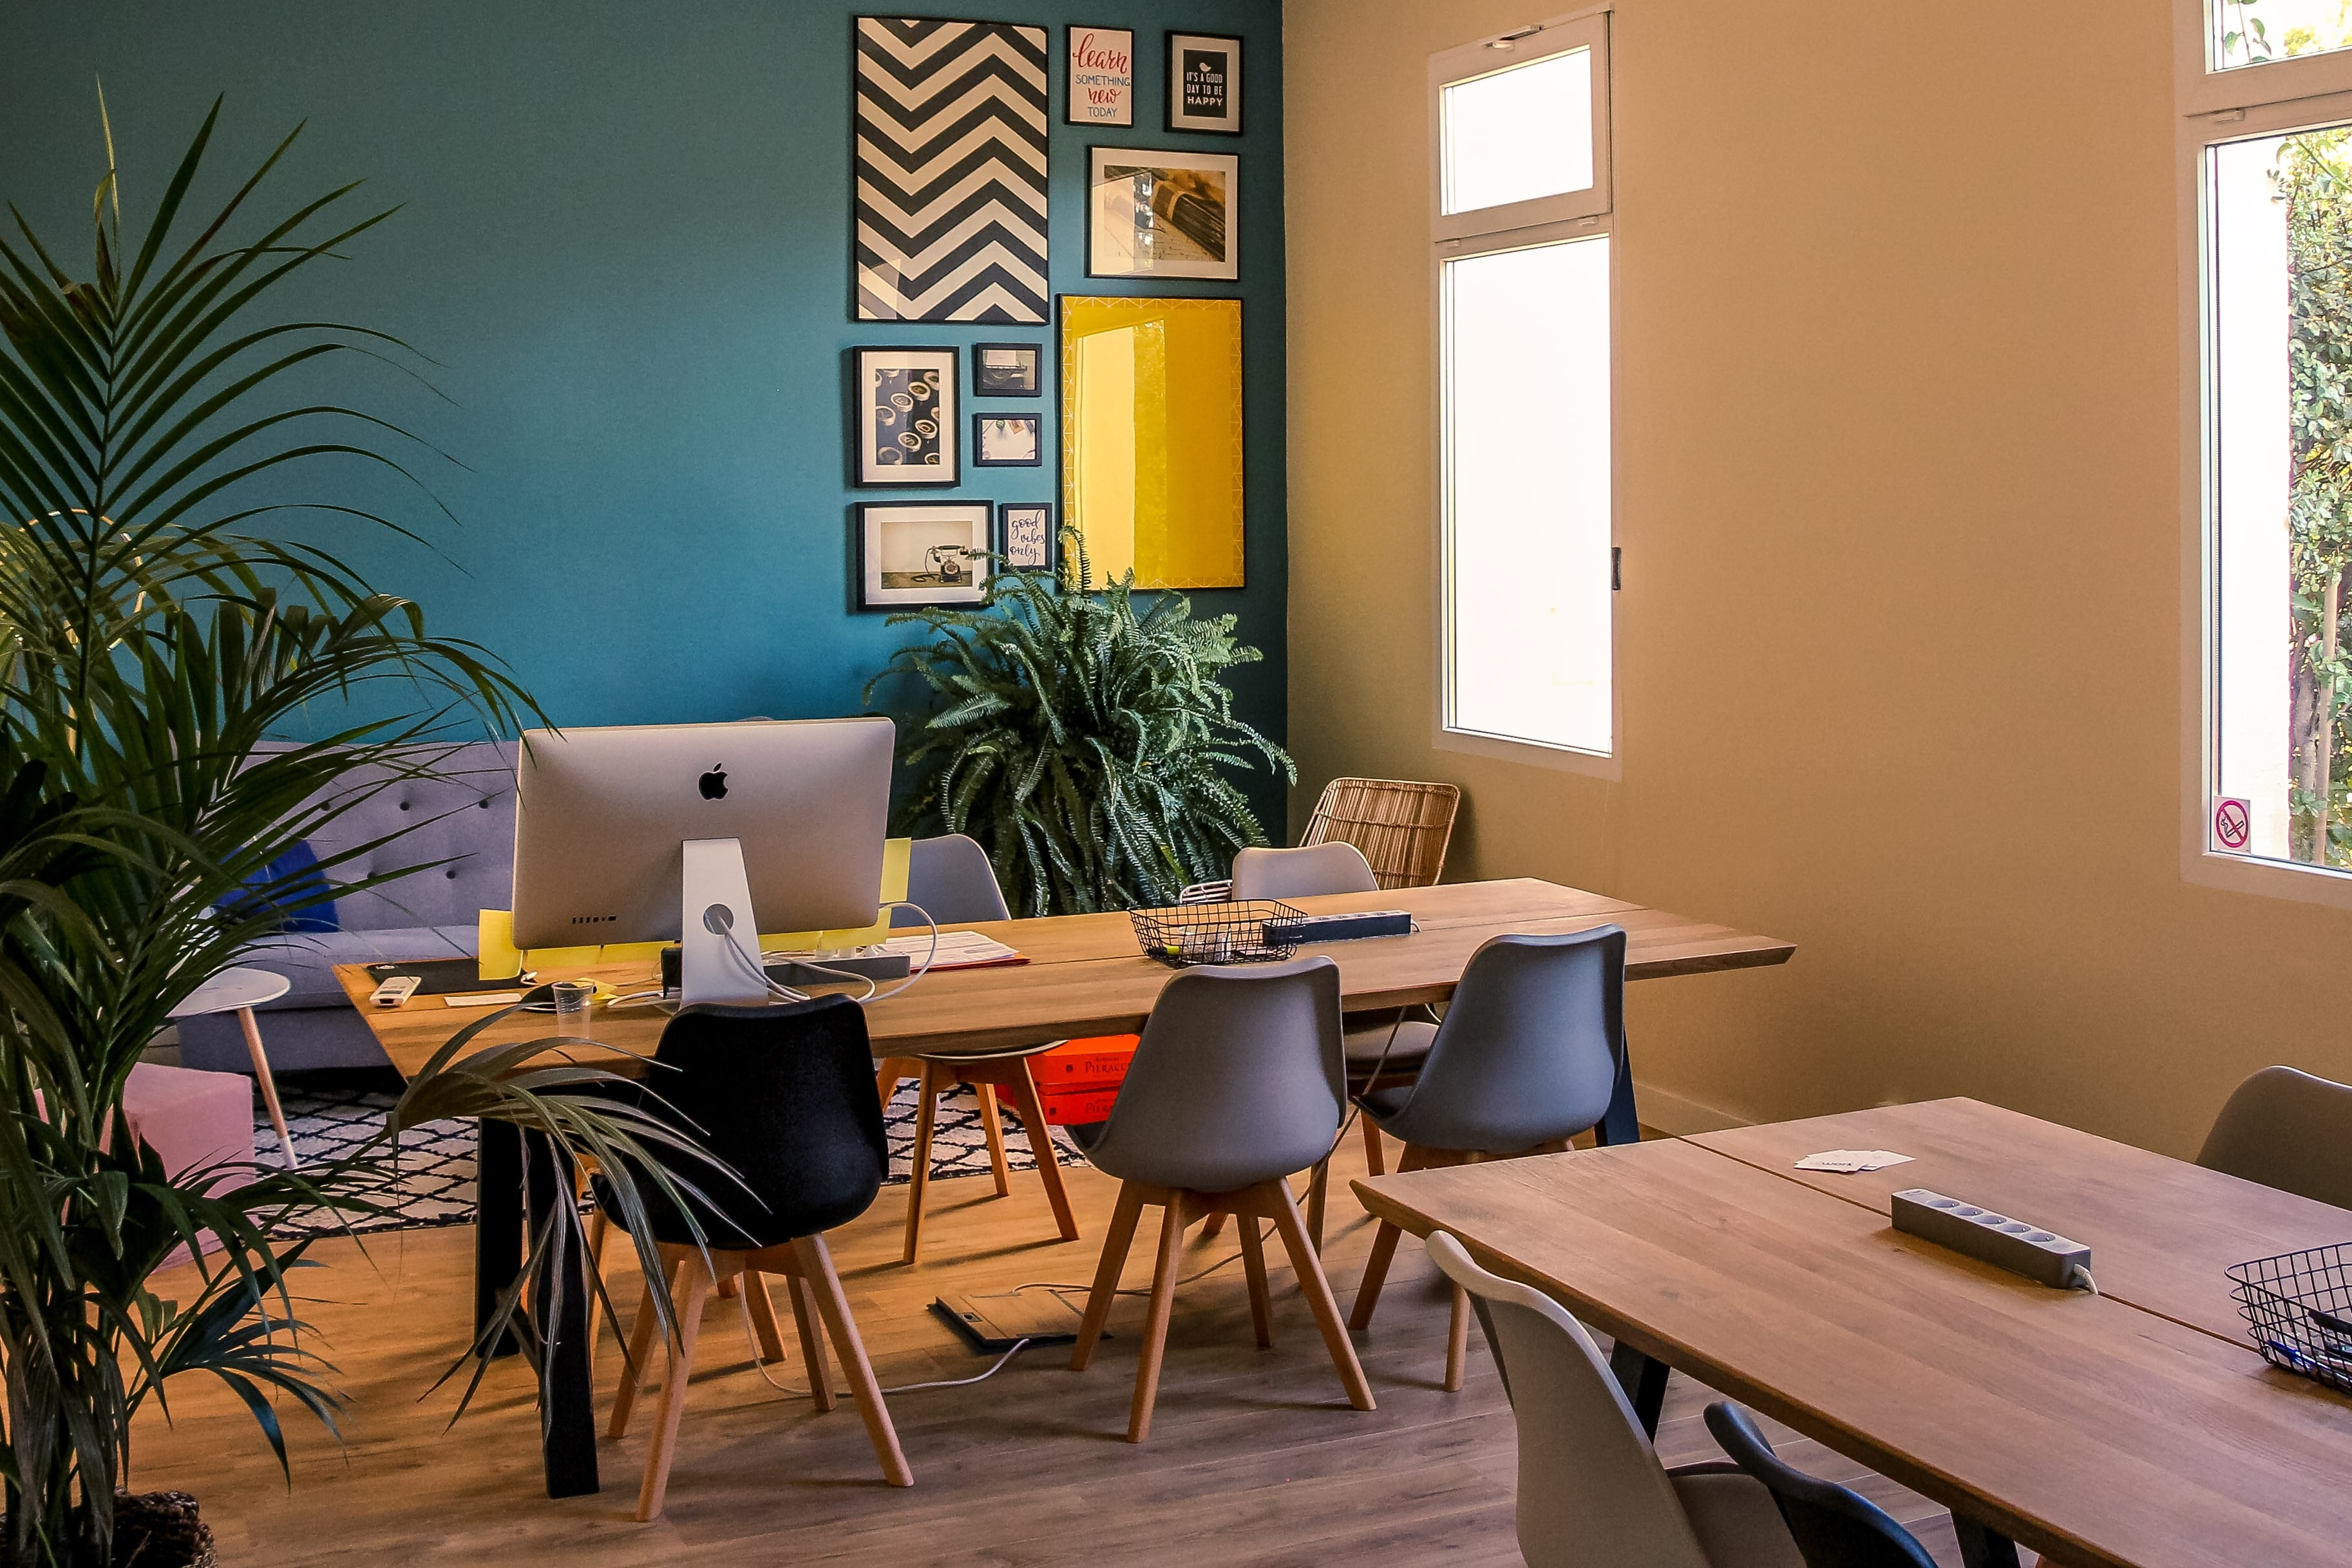 The south of France has lots of stylish coworking places, like ATWORK in Cannes | © ATWORK